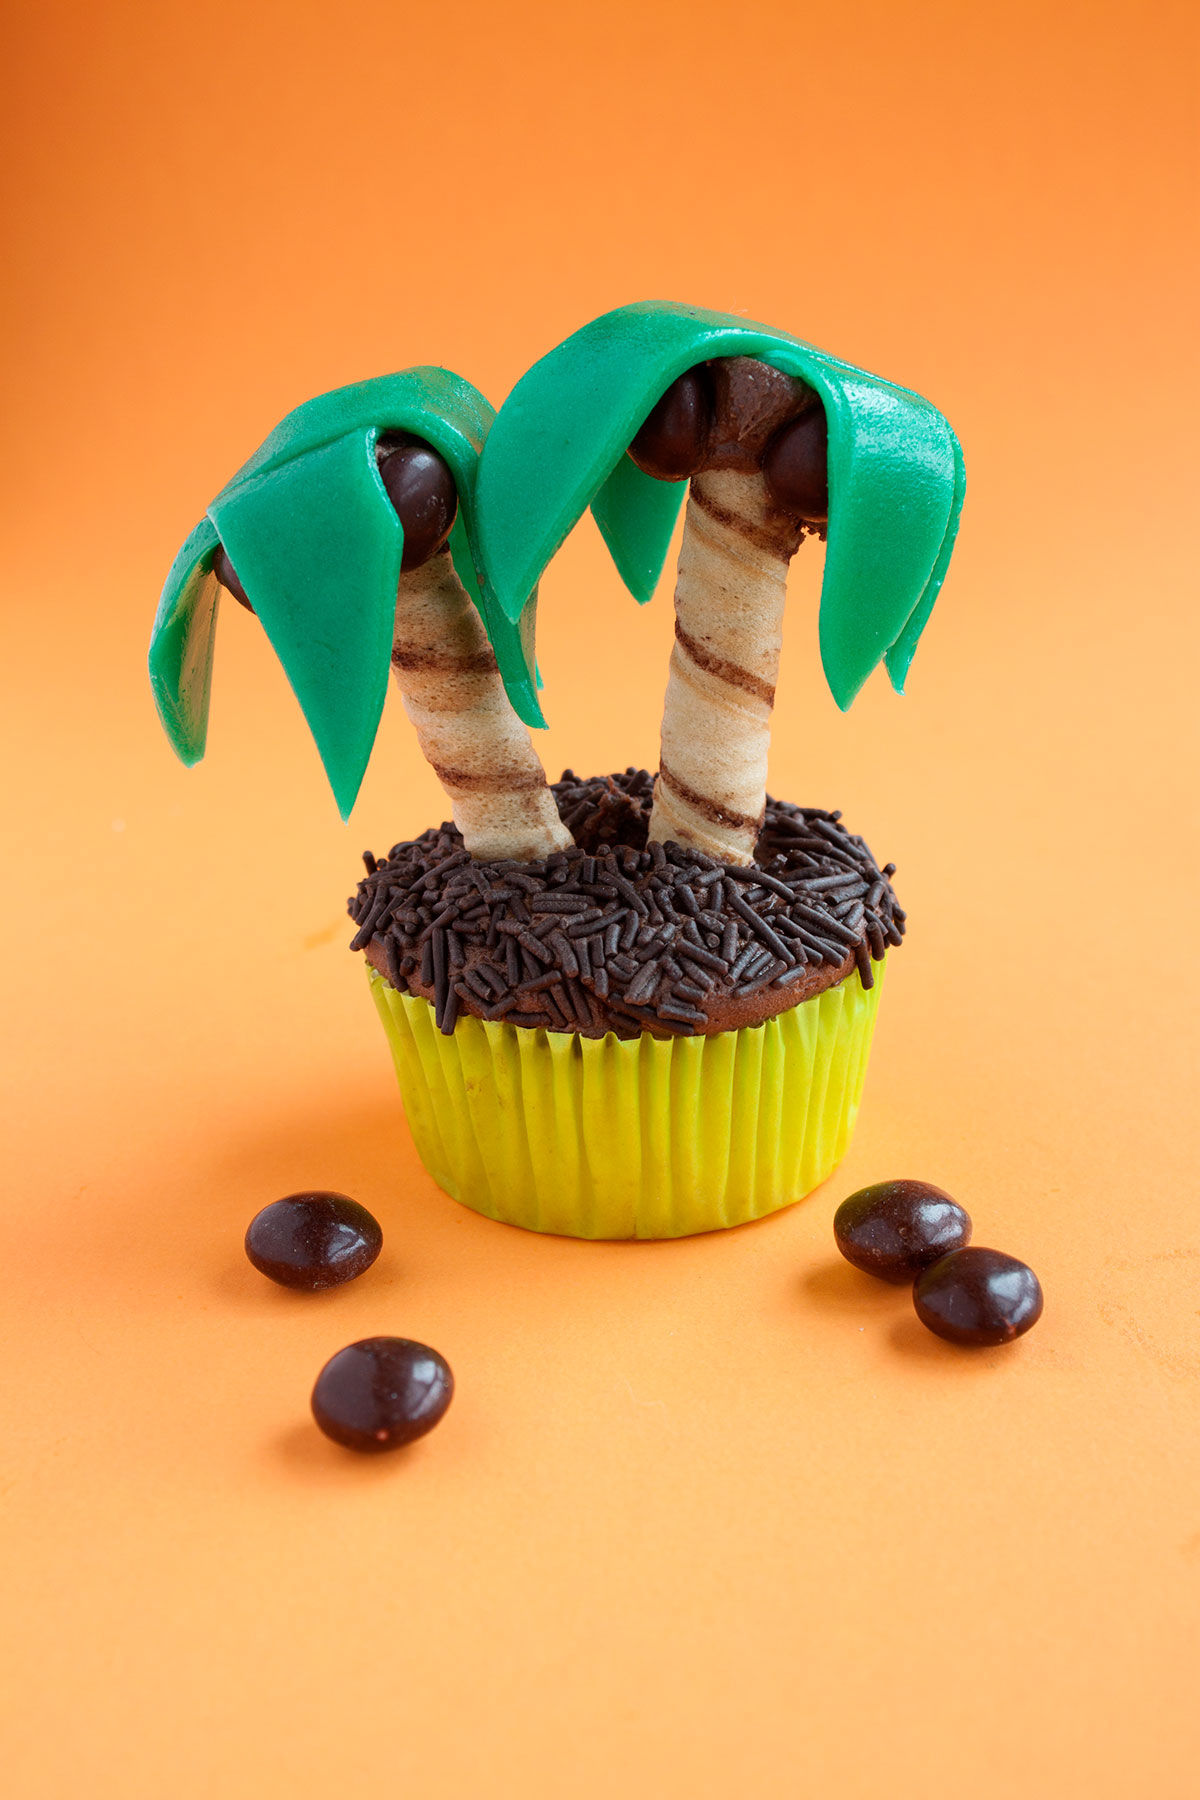 diy edible palm trees pictures photos and images for